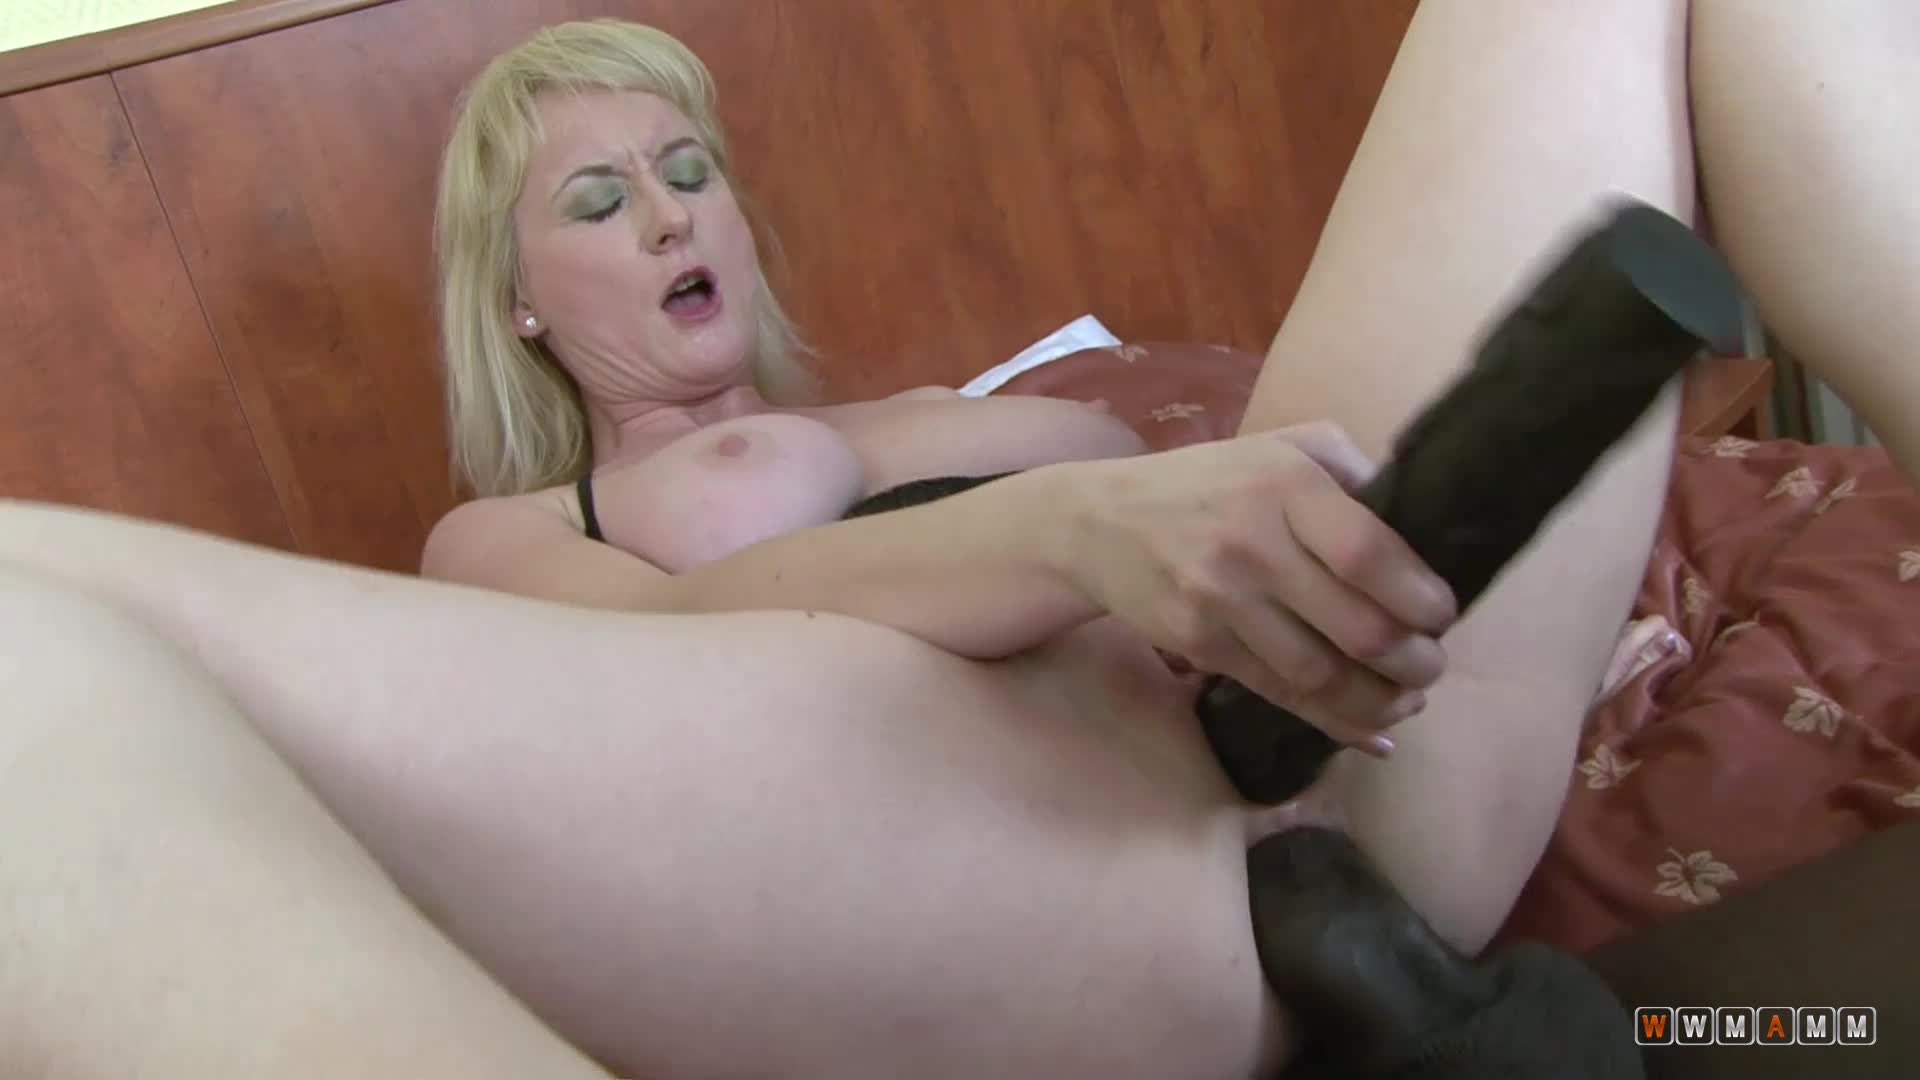 Sexy Blonde Mature Meets Younger African Guy For A Hard Pounding